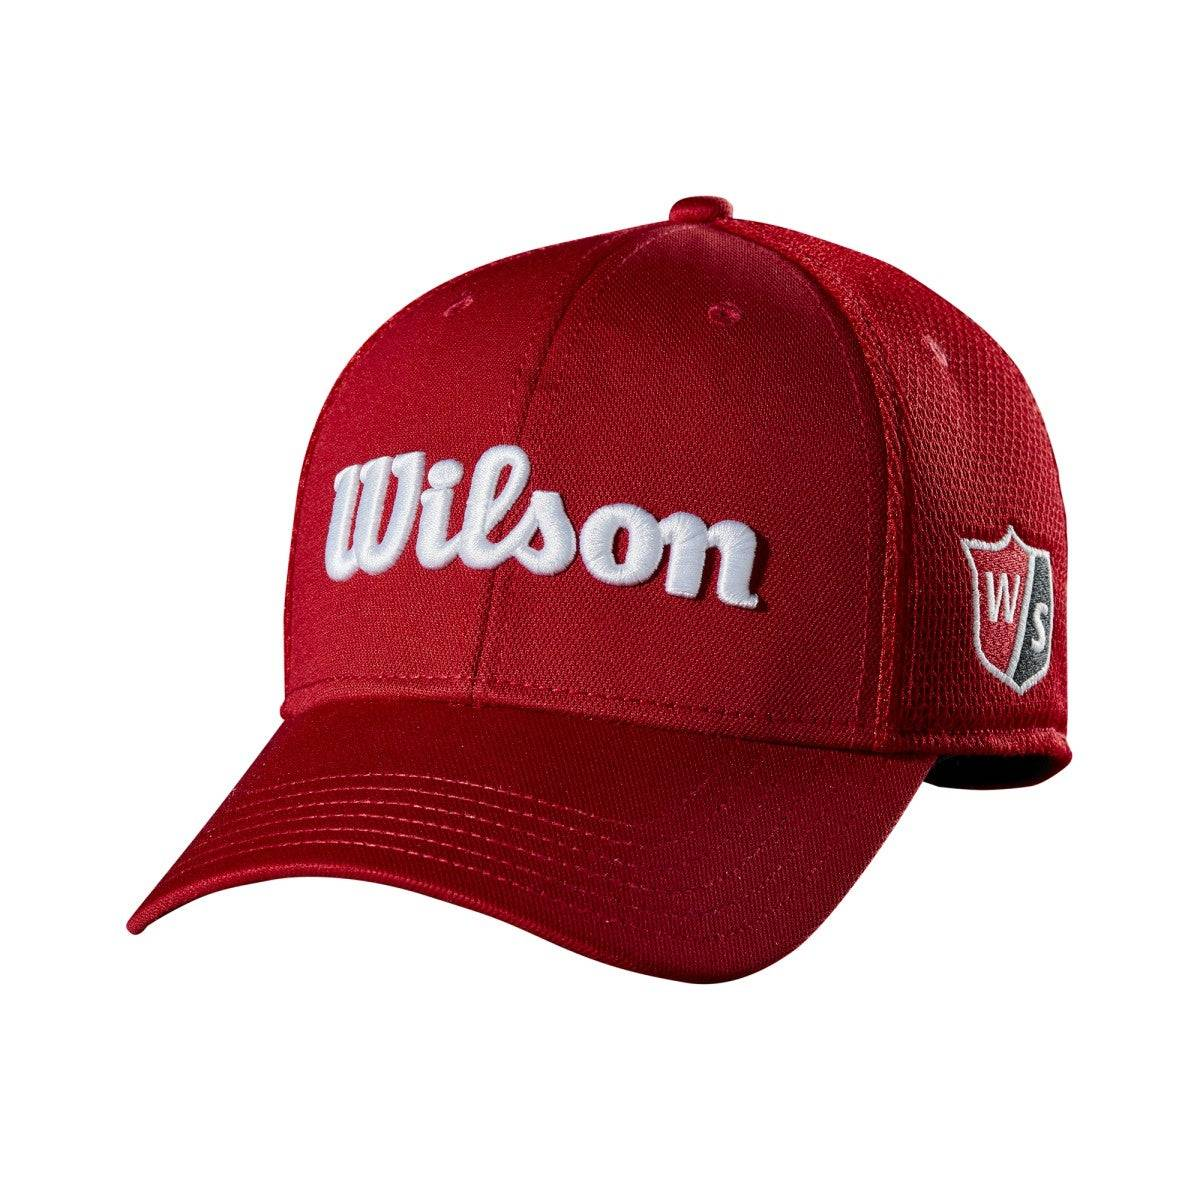 Wilson Tour Mesh Cap in Red - Size: One Size  - Unisex - Red - Size: One Size